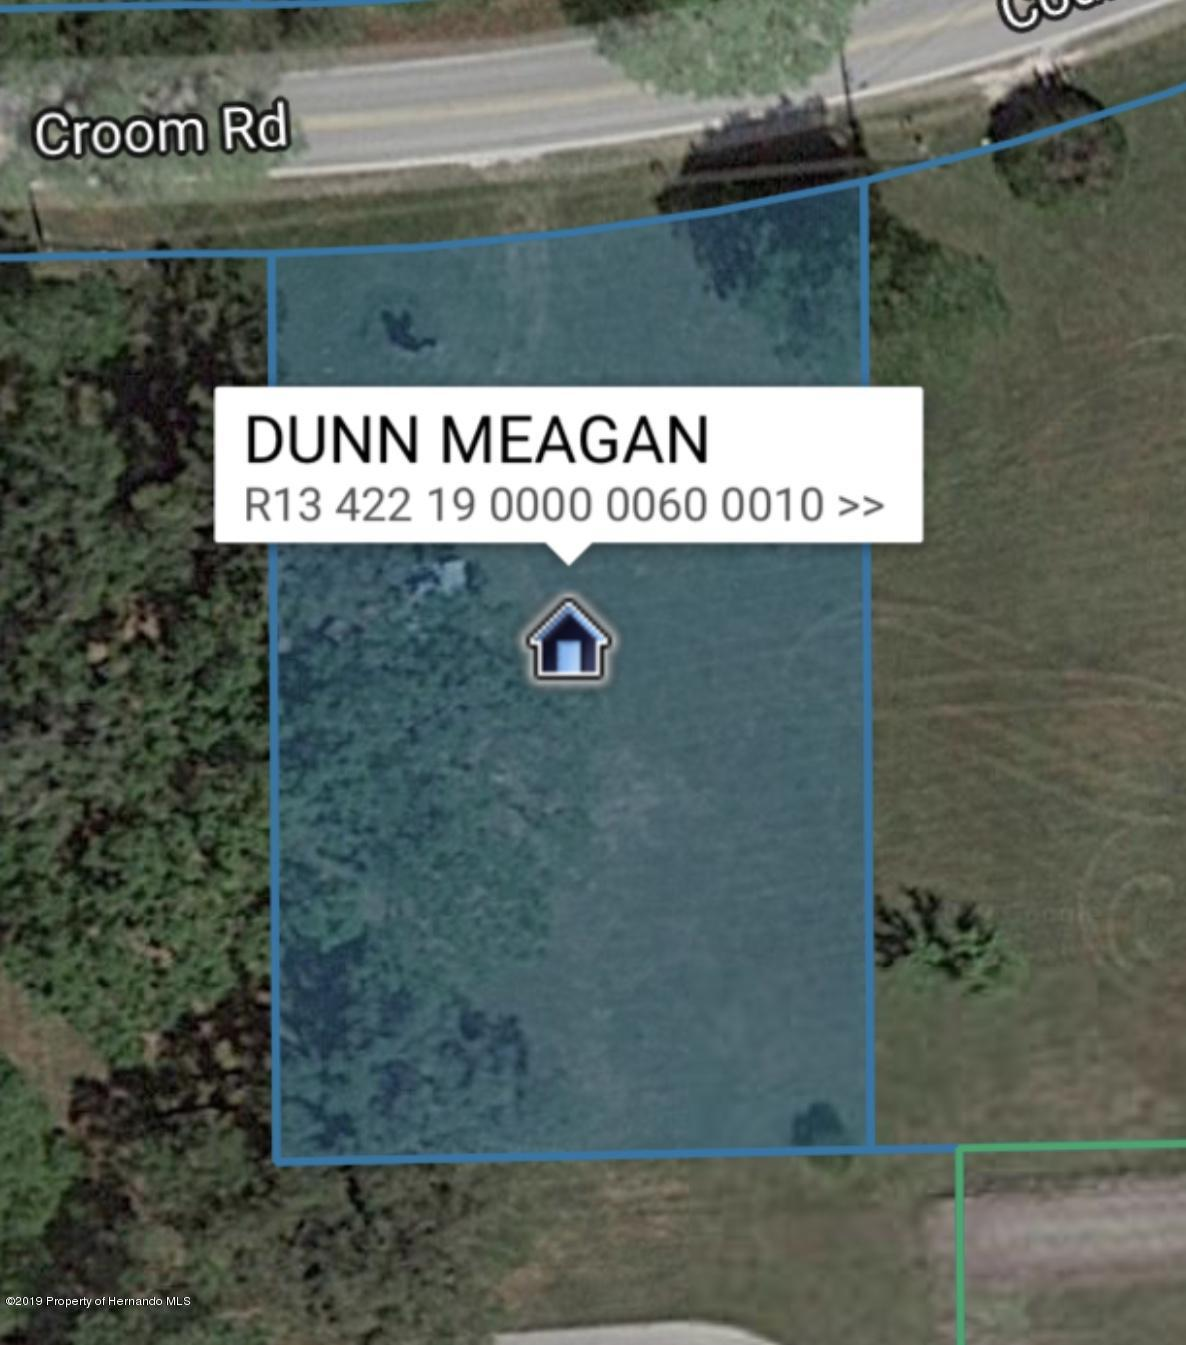 0 Croom Rd, Brooksville, Florida 34601, ,Vacant land,For Sale,Croom Rd,2199034